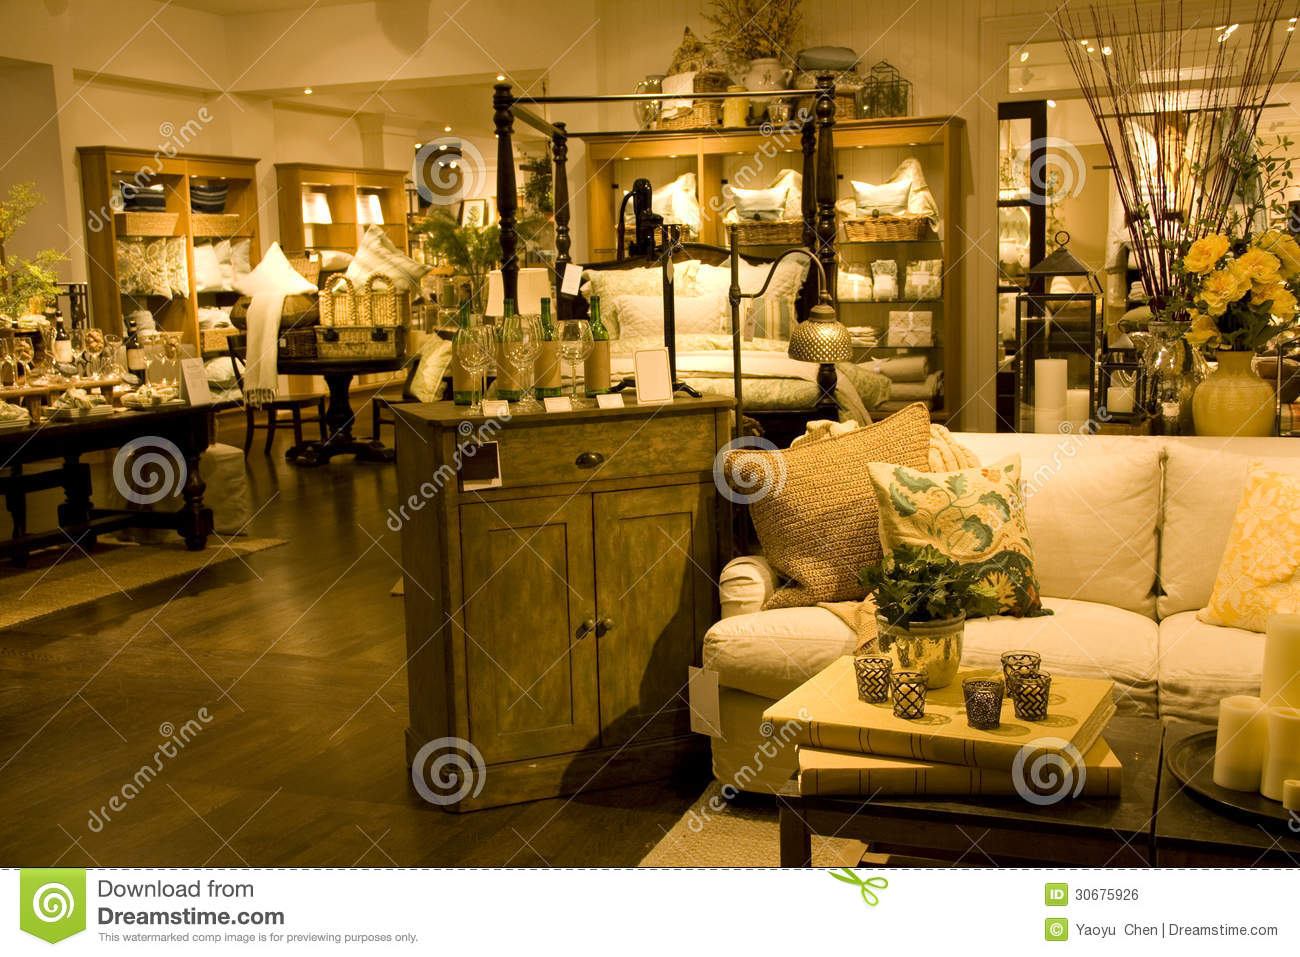 Funiture and home decor store royalty free stock image image 30675926 - How to sell home decor online plan ...